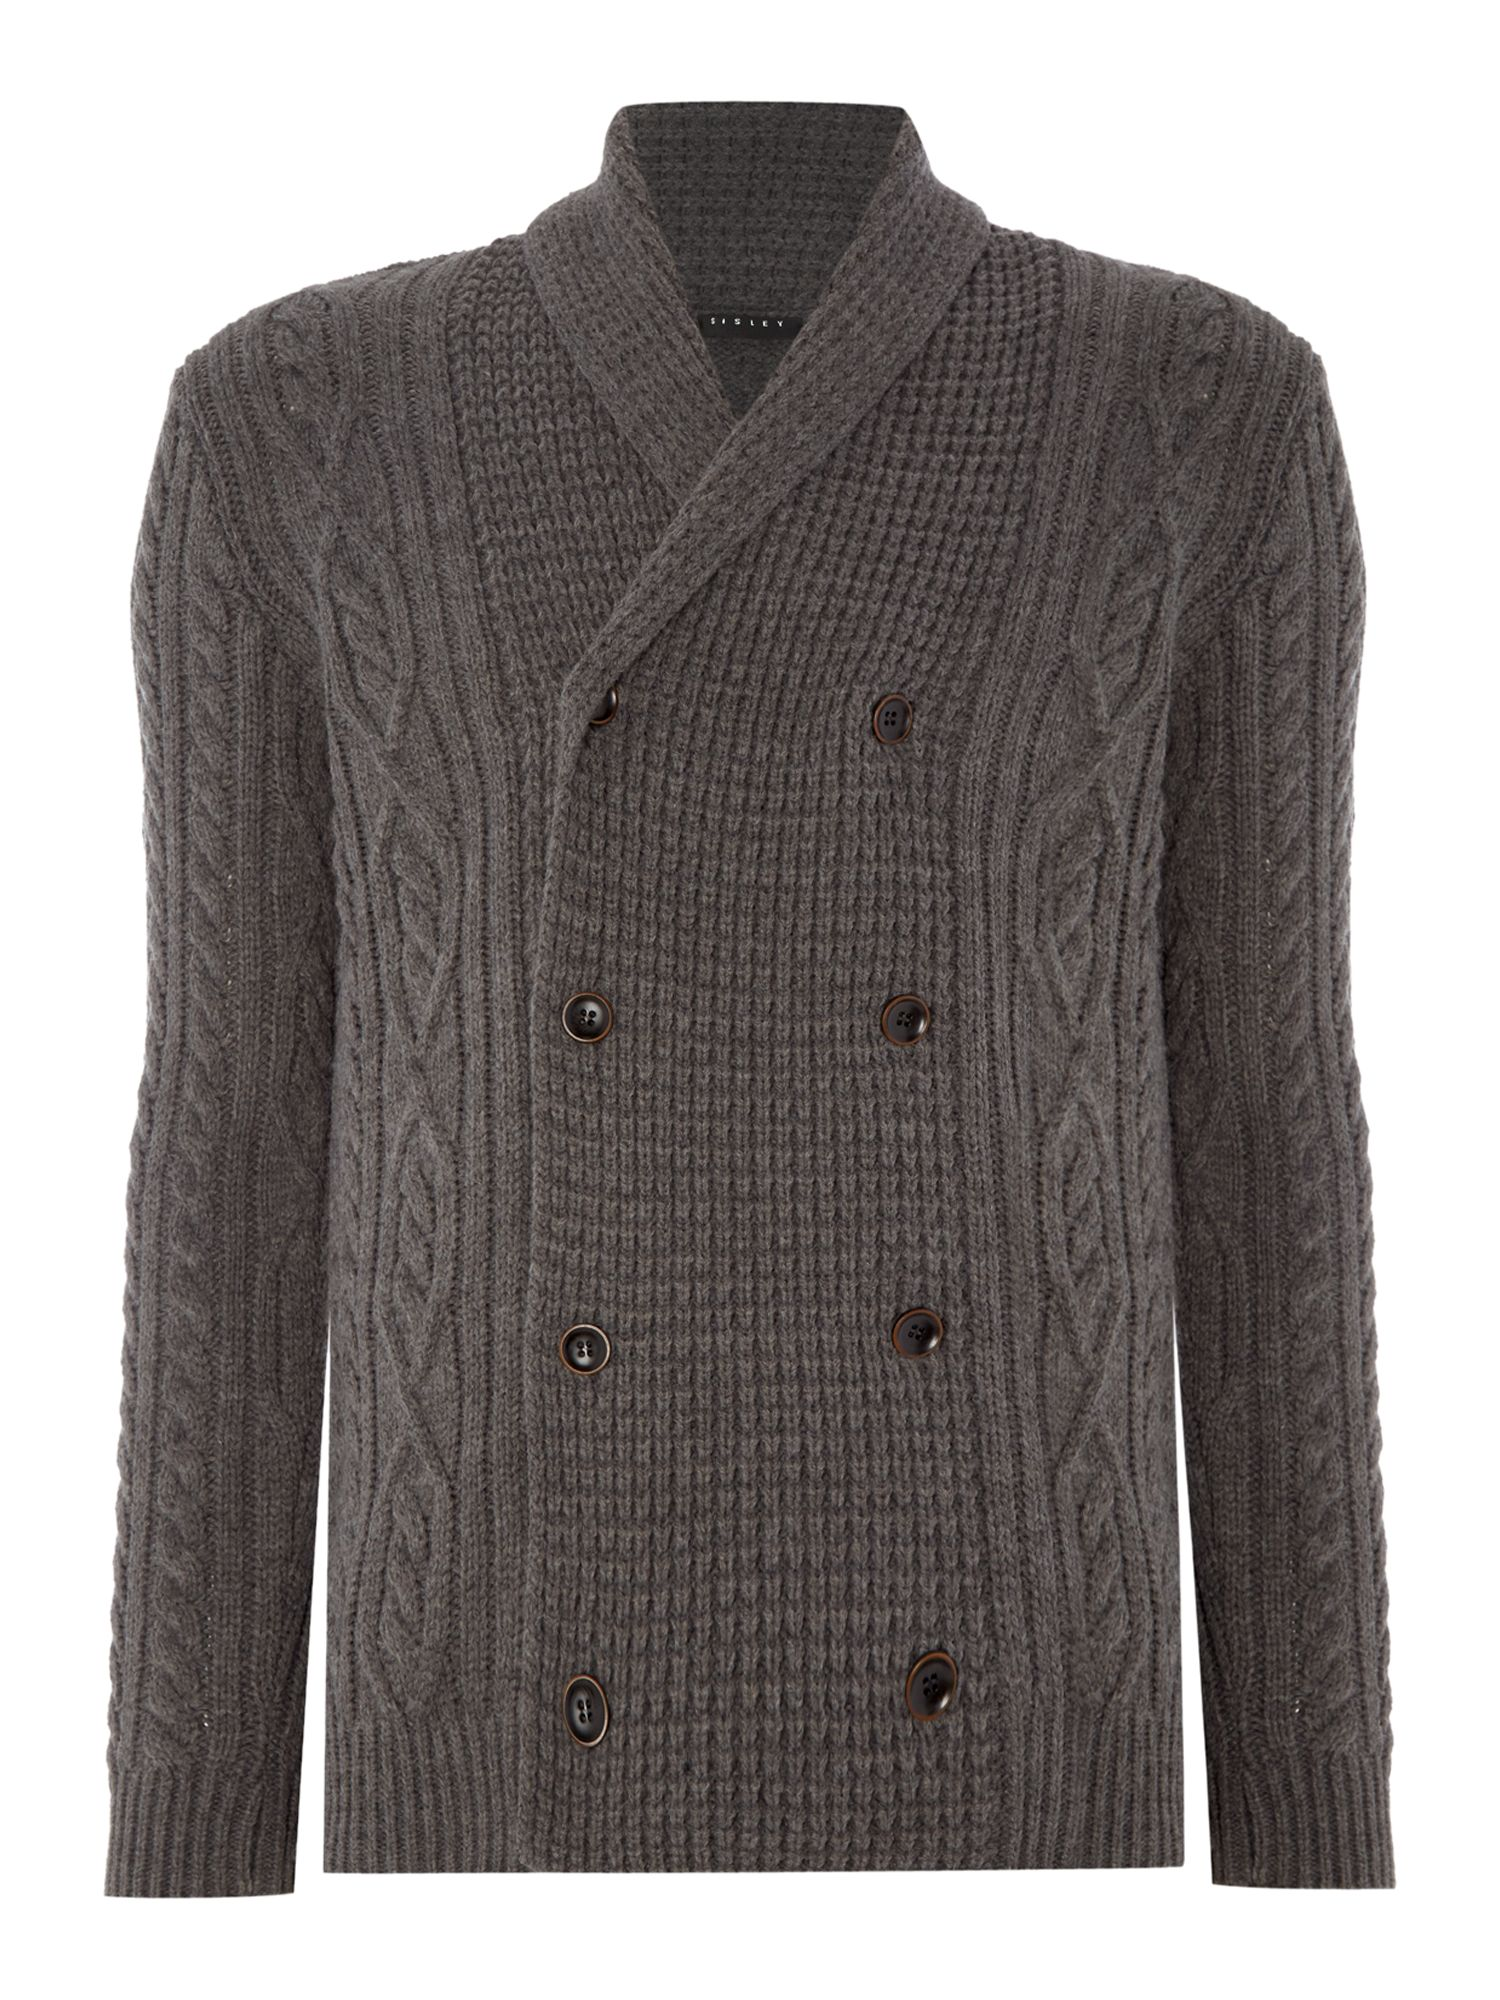 Mens Sisley Men Double Breasted Cable Knit Cardigan $75.00 AT vintagedancer.com